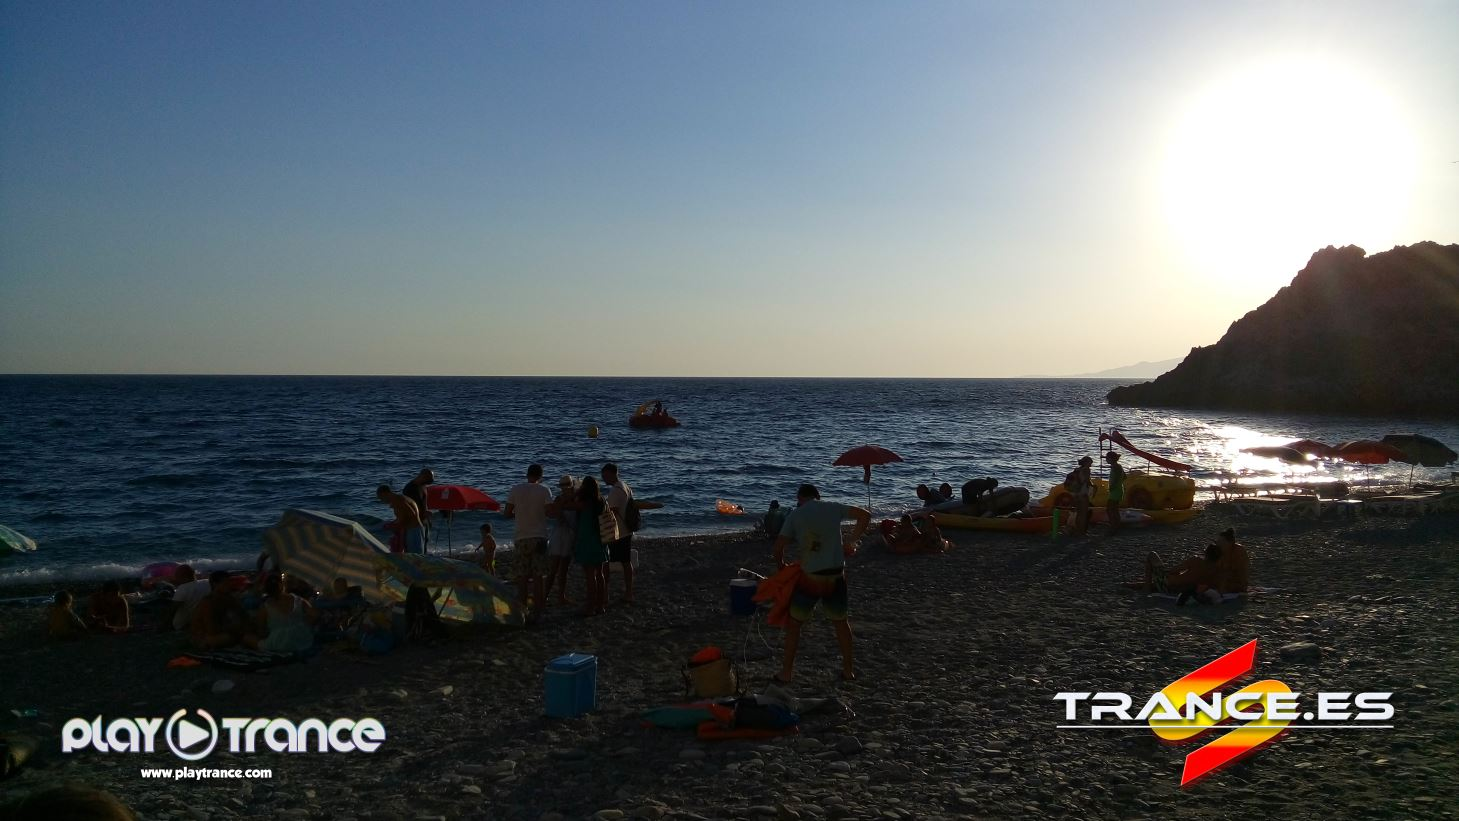 Crónica: Sunrise Trance Meeting 2015: Nada es imposible